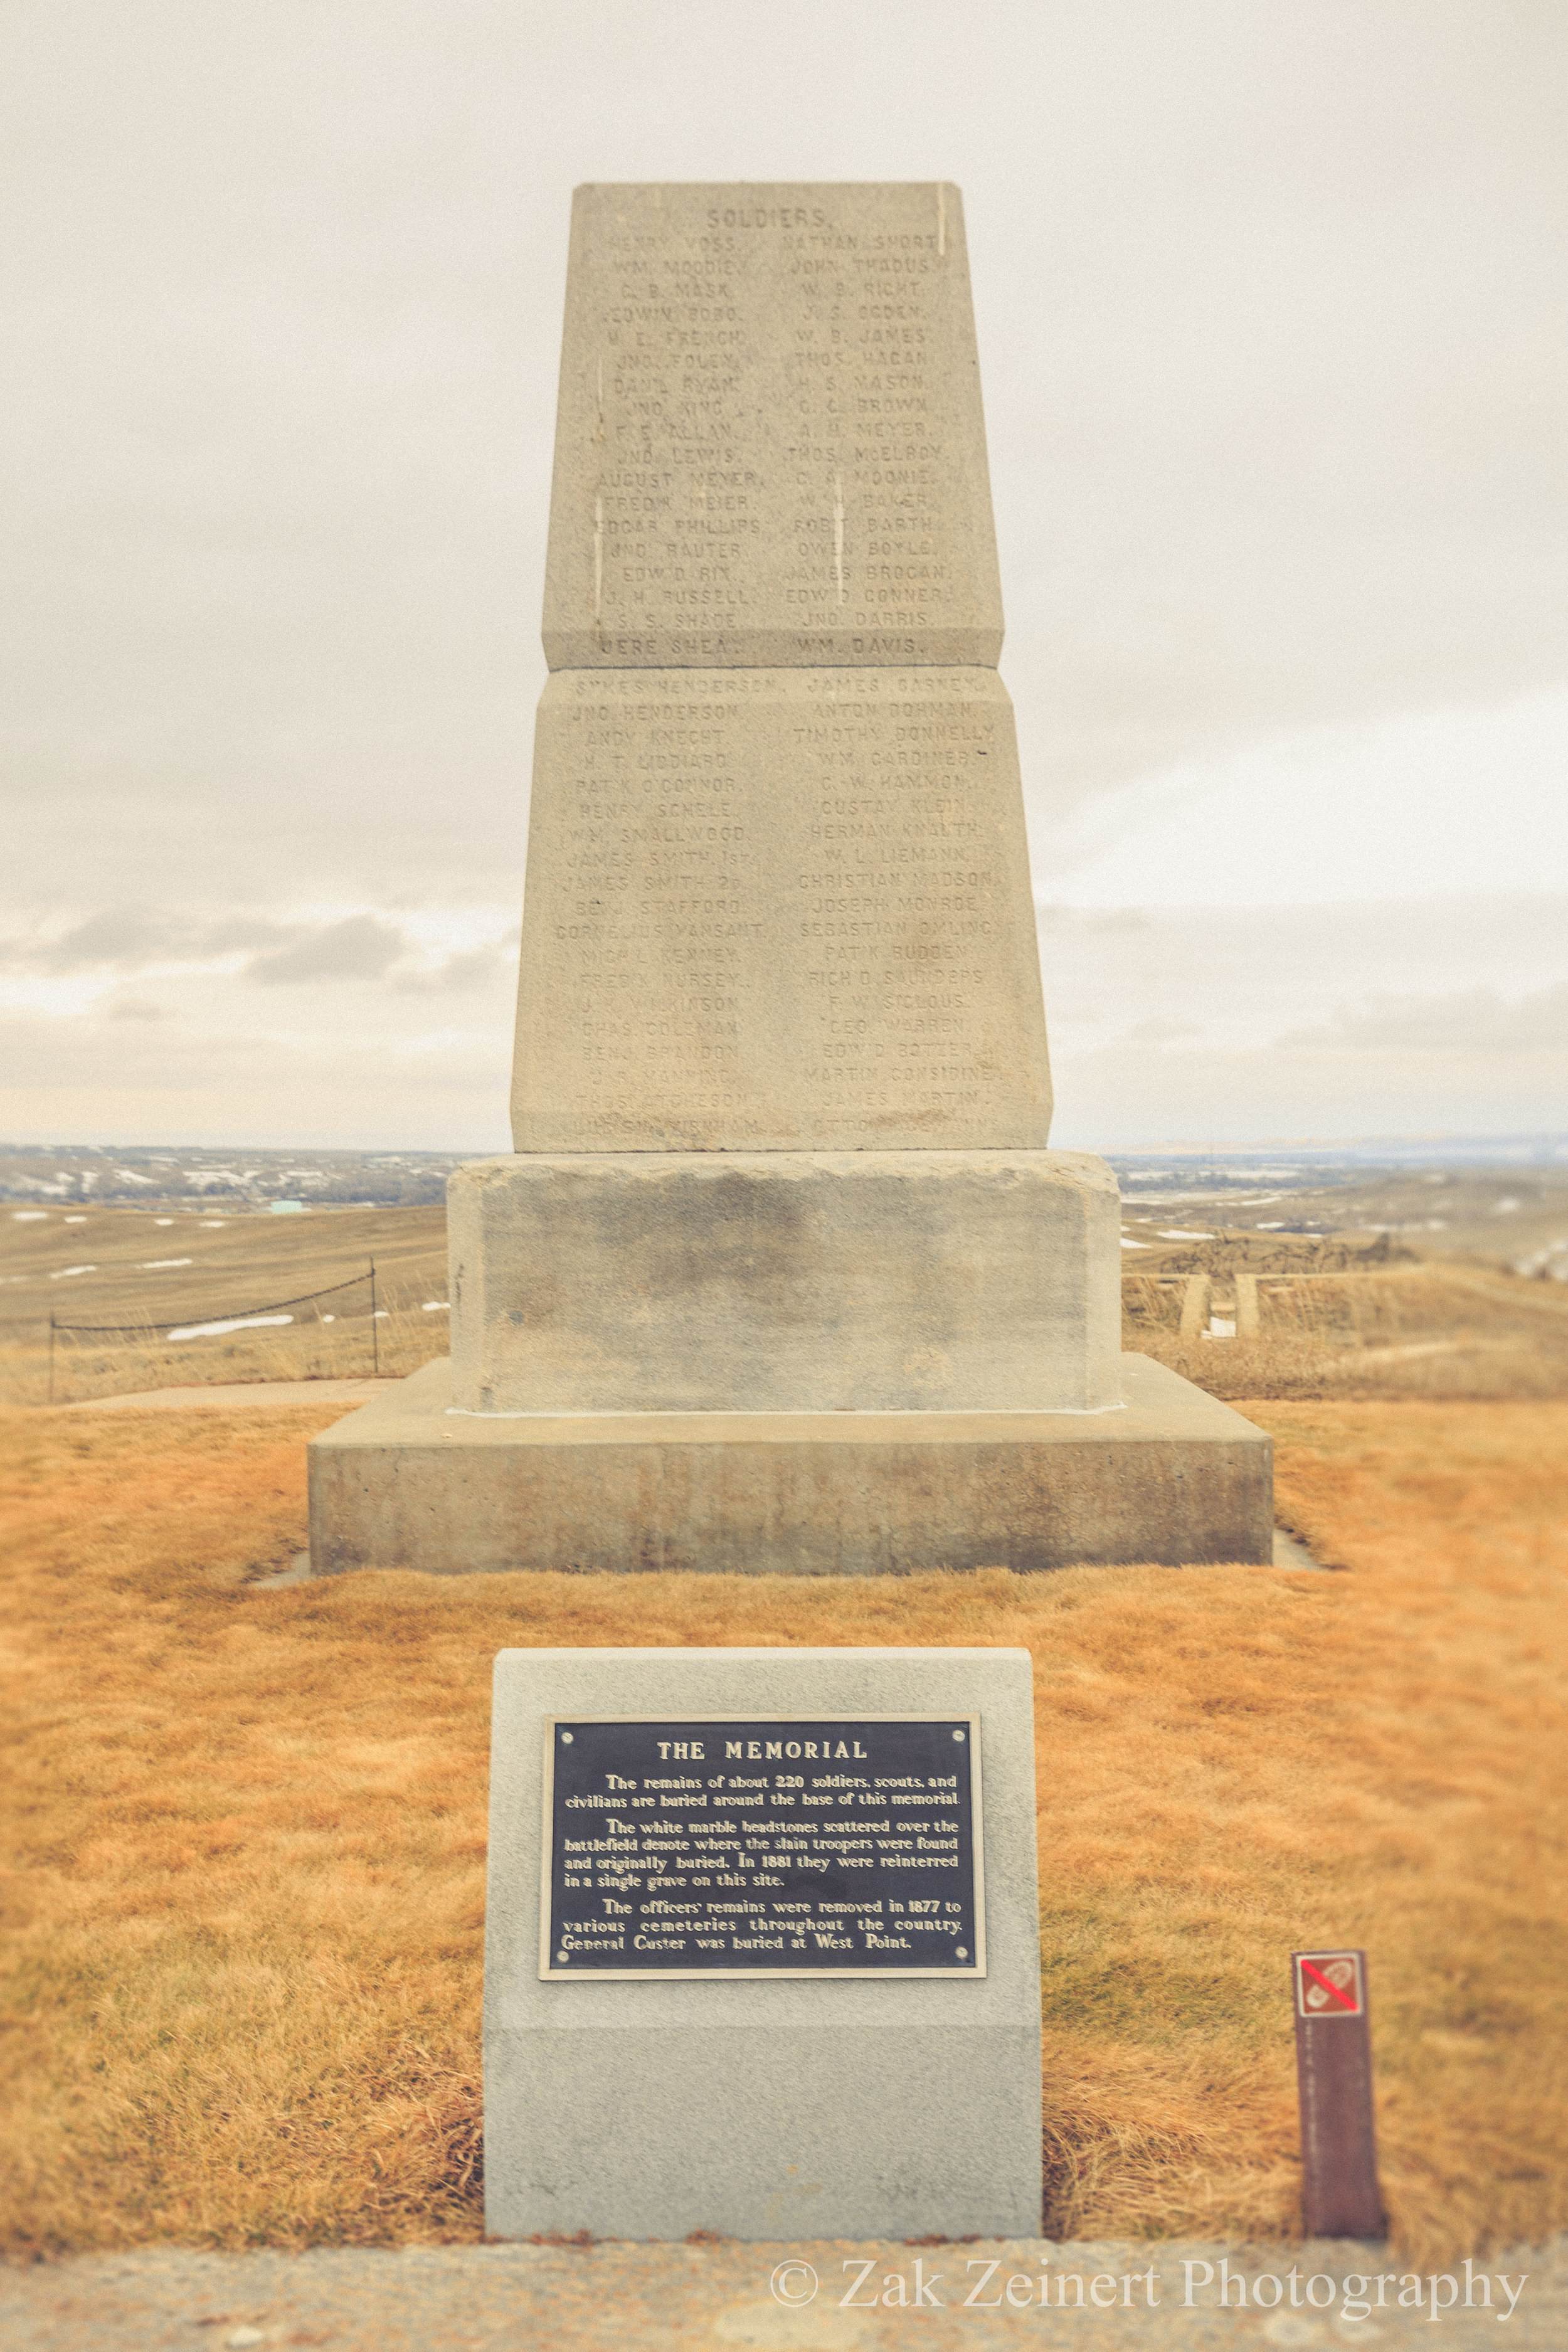 Monument marking the location where General Custer and his men were found dead